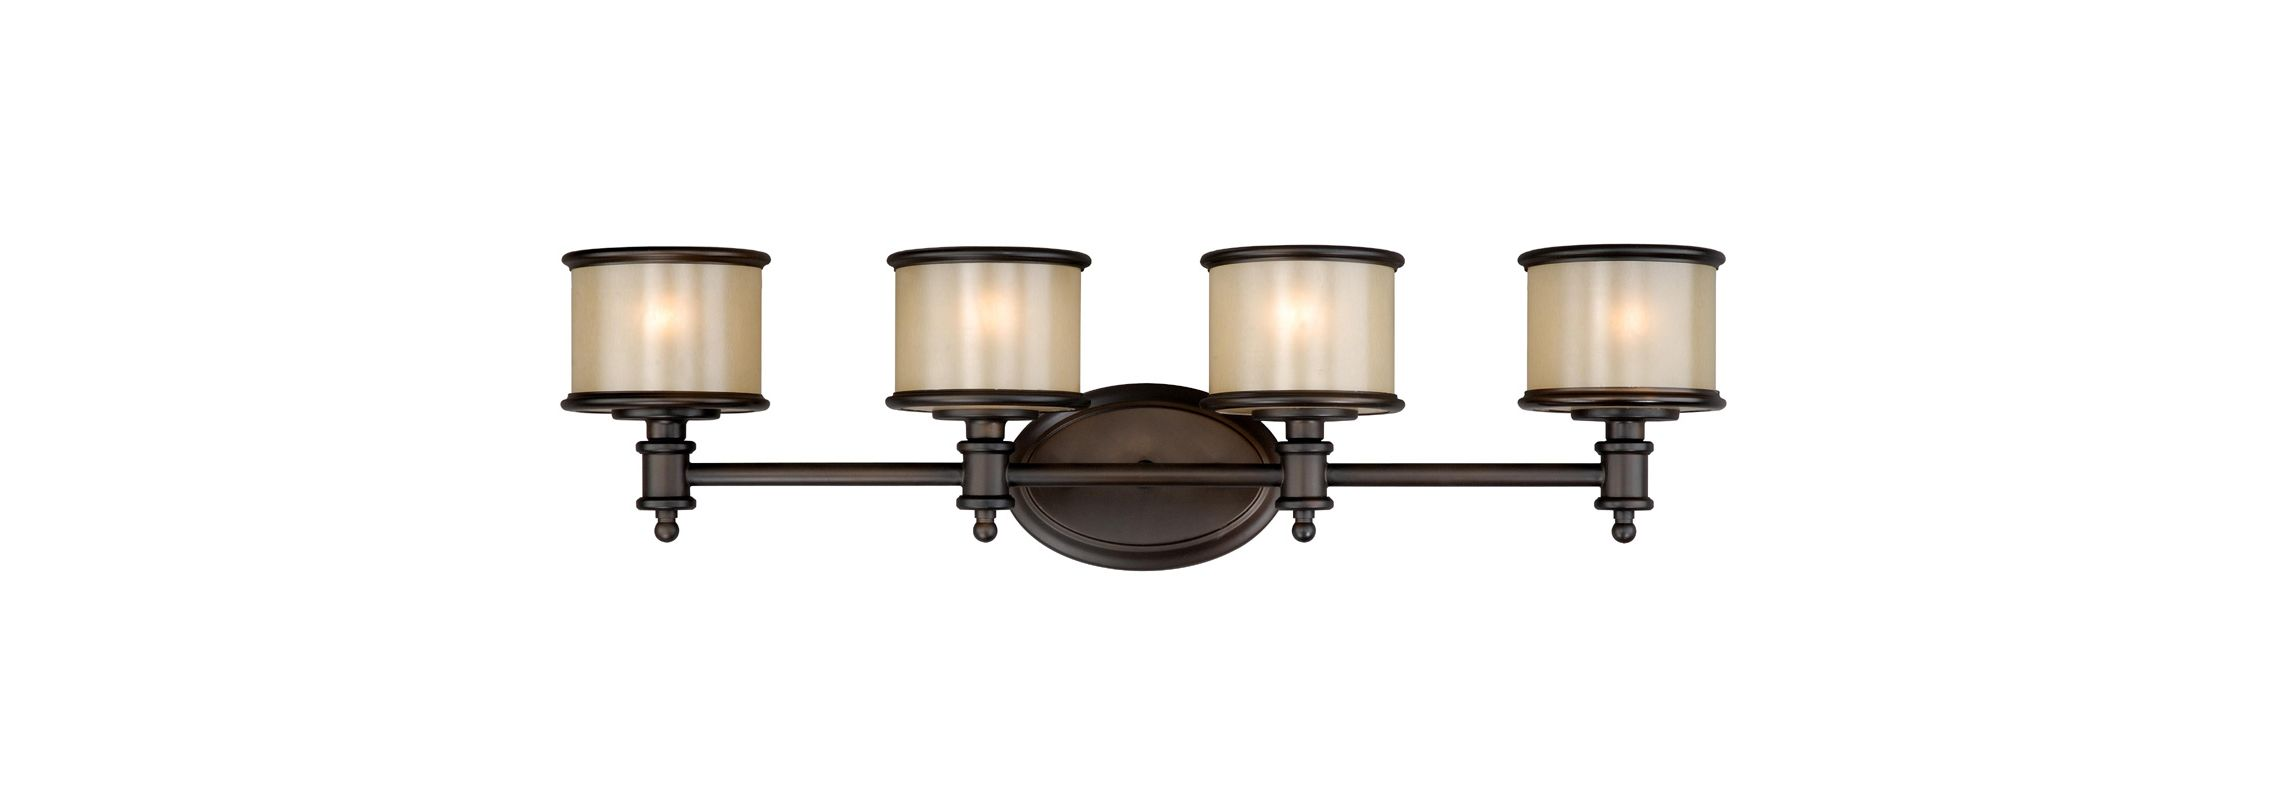 Vaxcel Lighting CR-VLU004 Carlisle 4 Light Bathroom Vanity Light - 29